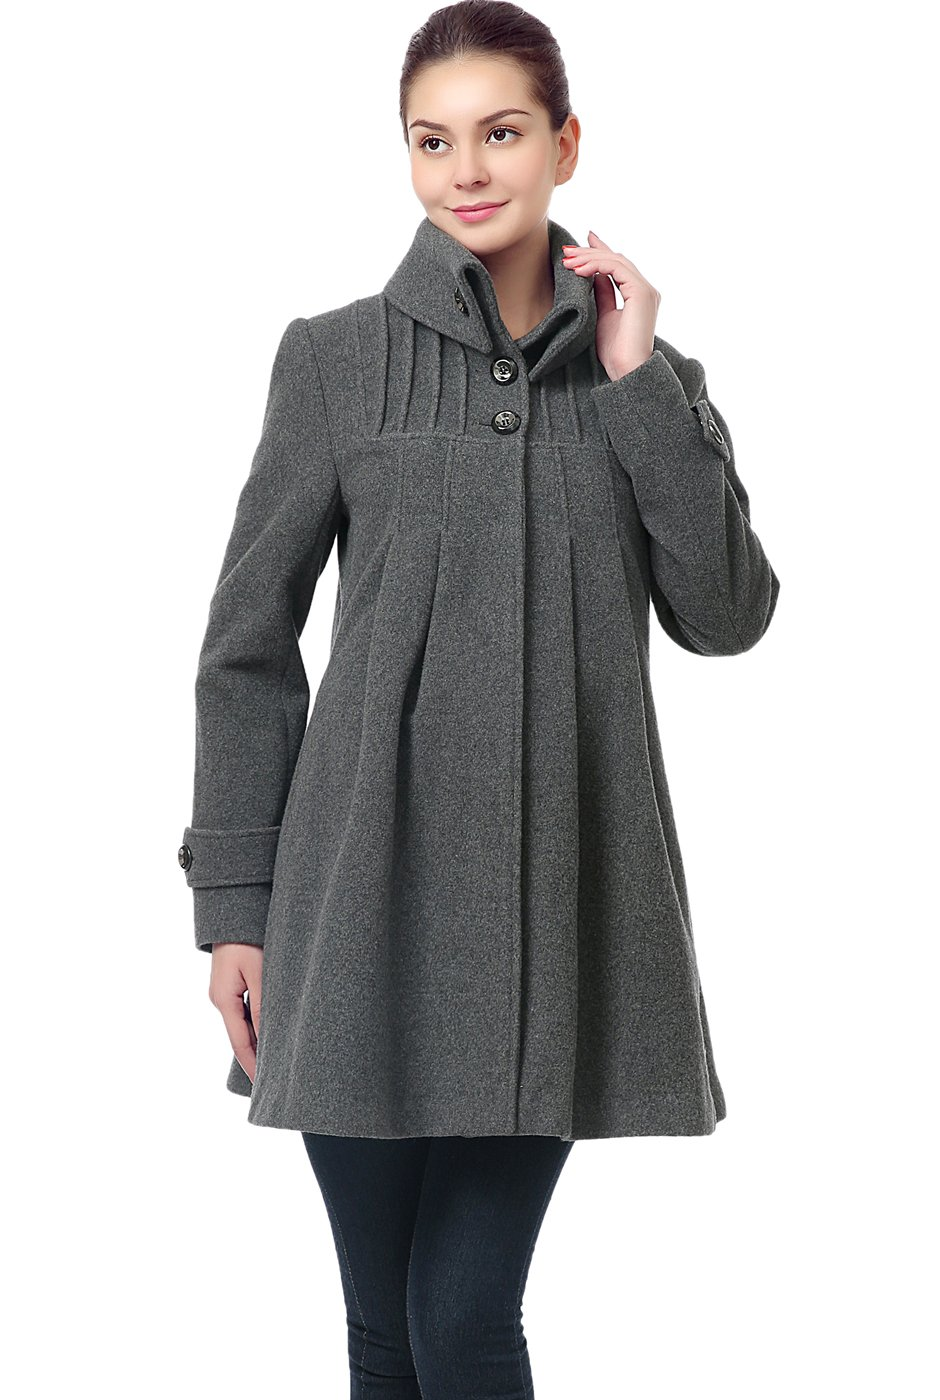 Momo Maternity Women's Wool Blend Pleated Swing Coat - Gray S